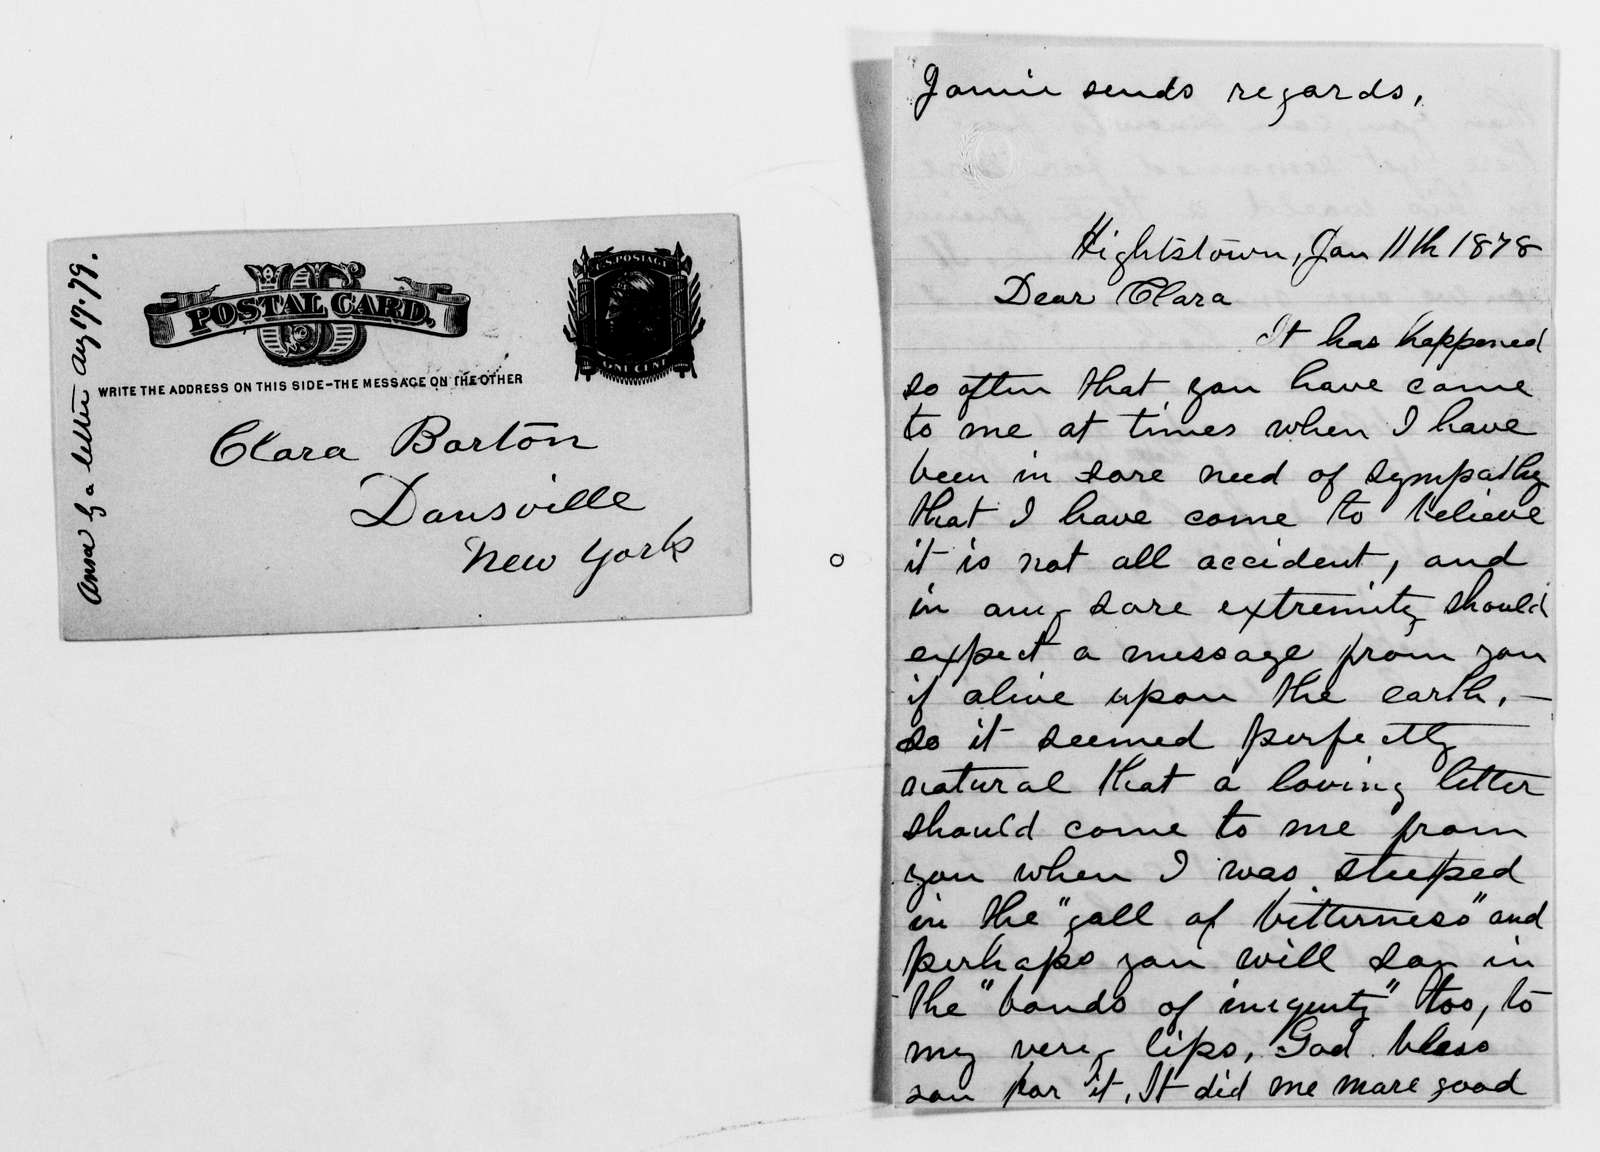 Clara Barton Papers: General Correspondence, 1838-1912; Norton, Charles M. and Mary, 1869-1902, undated